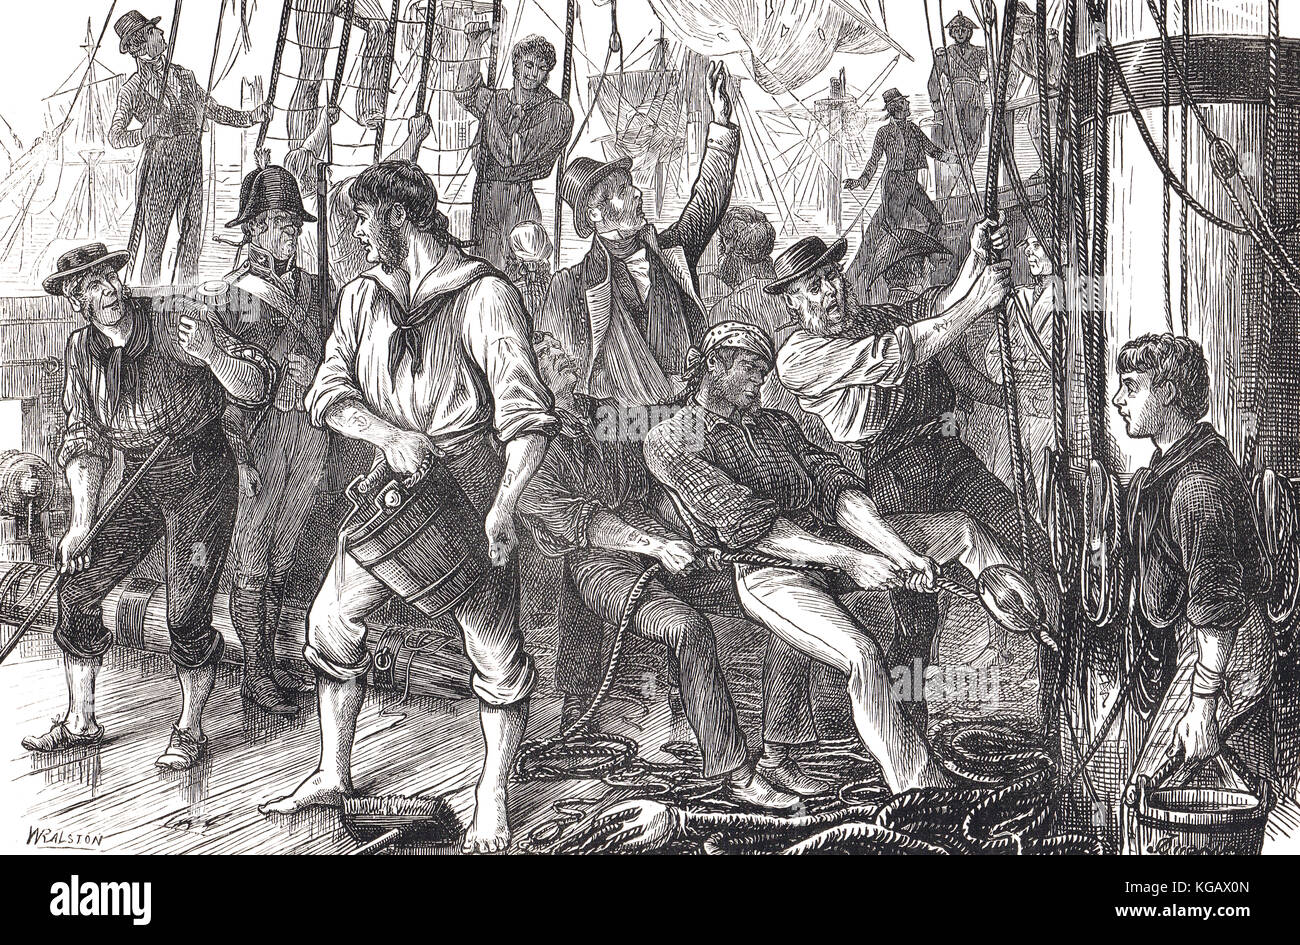 Scene on board ship, Glorious First of June, 1794, Lord Howe's victory - Stock Image